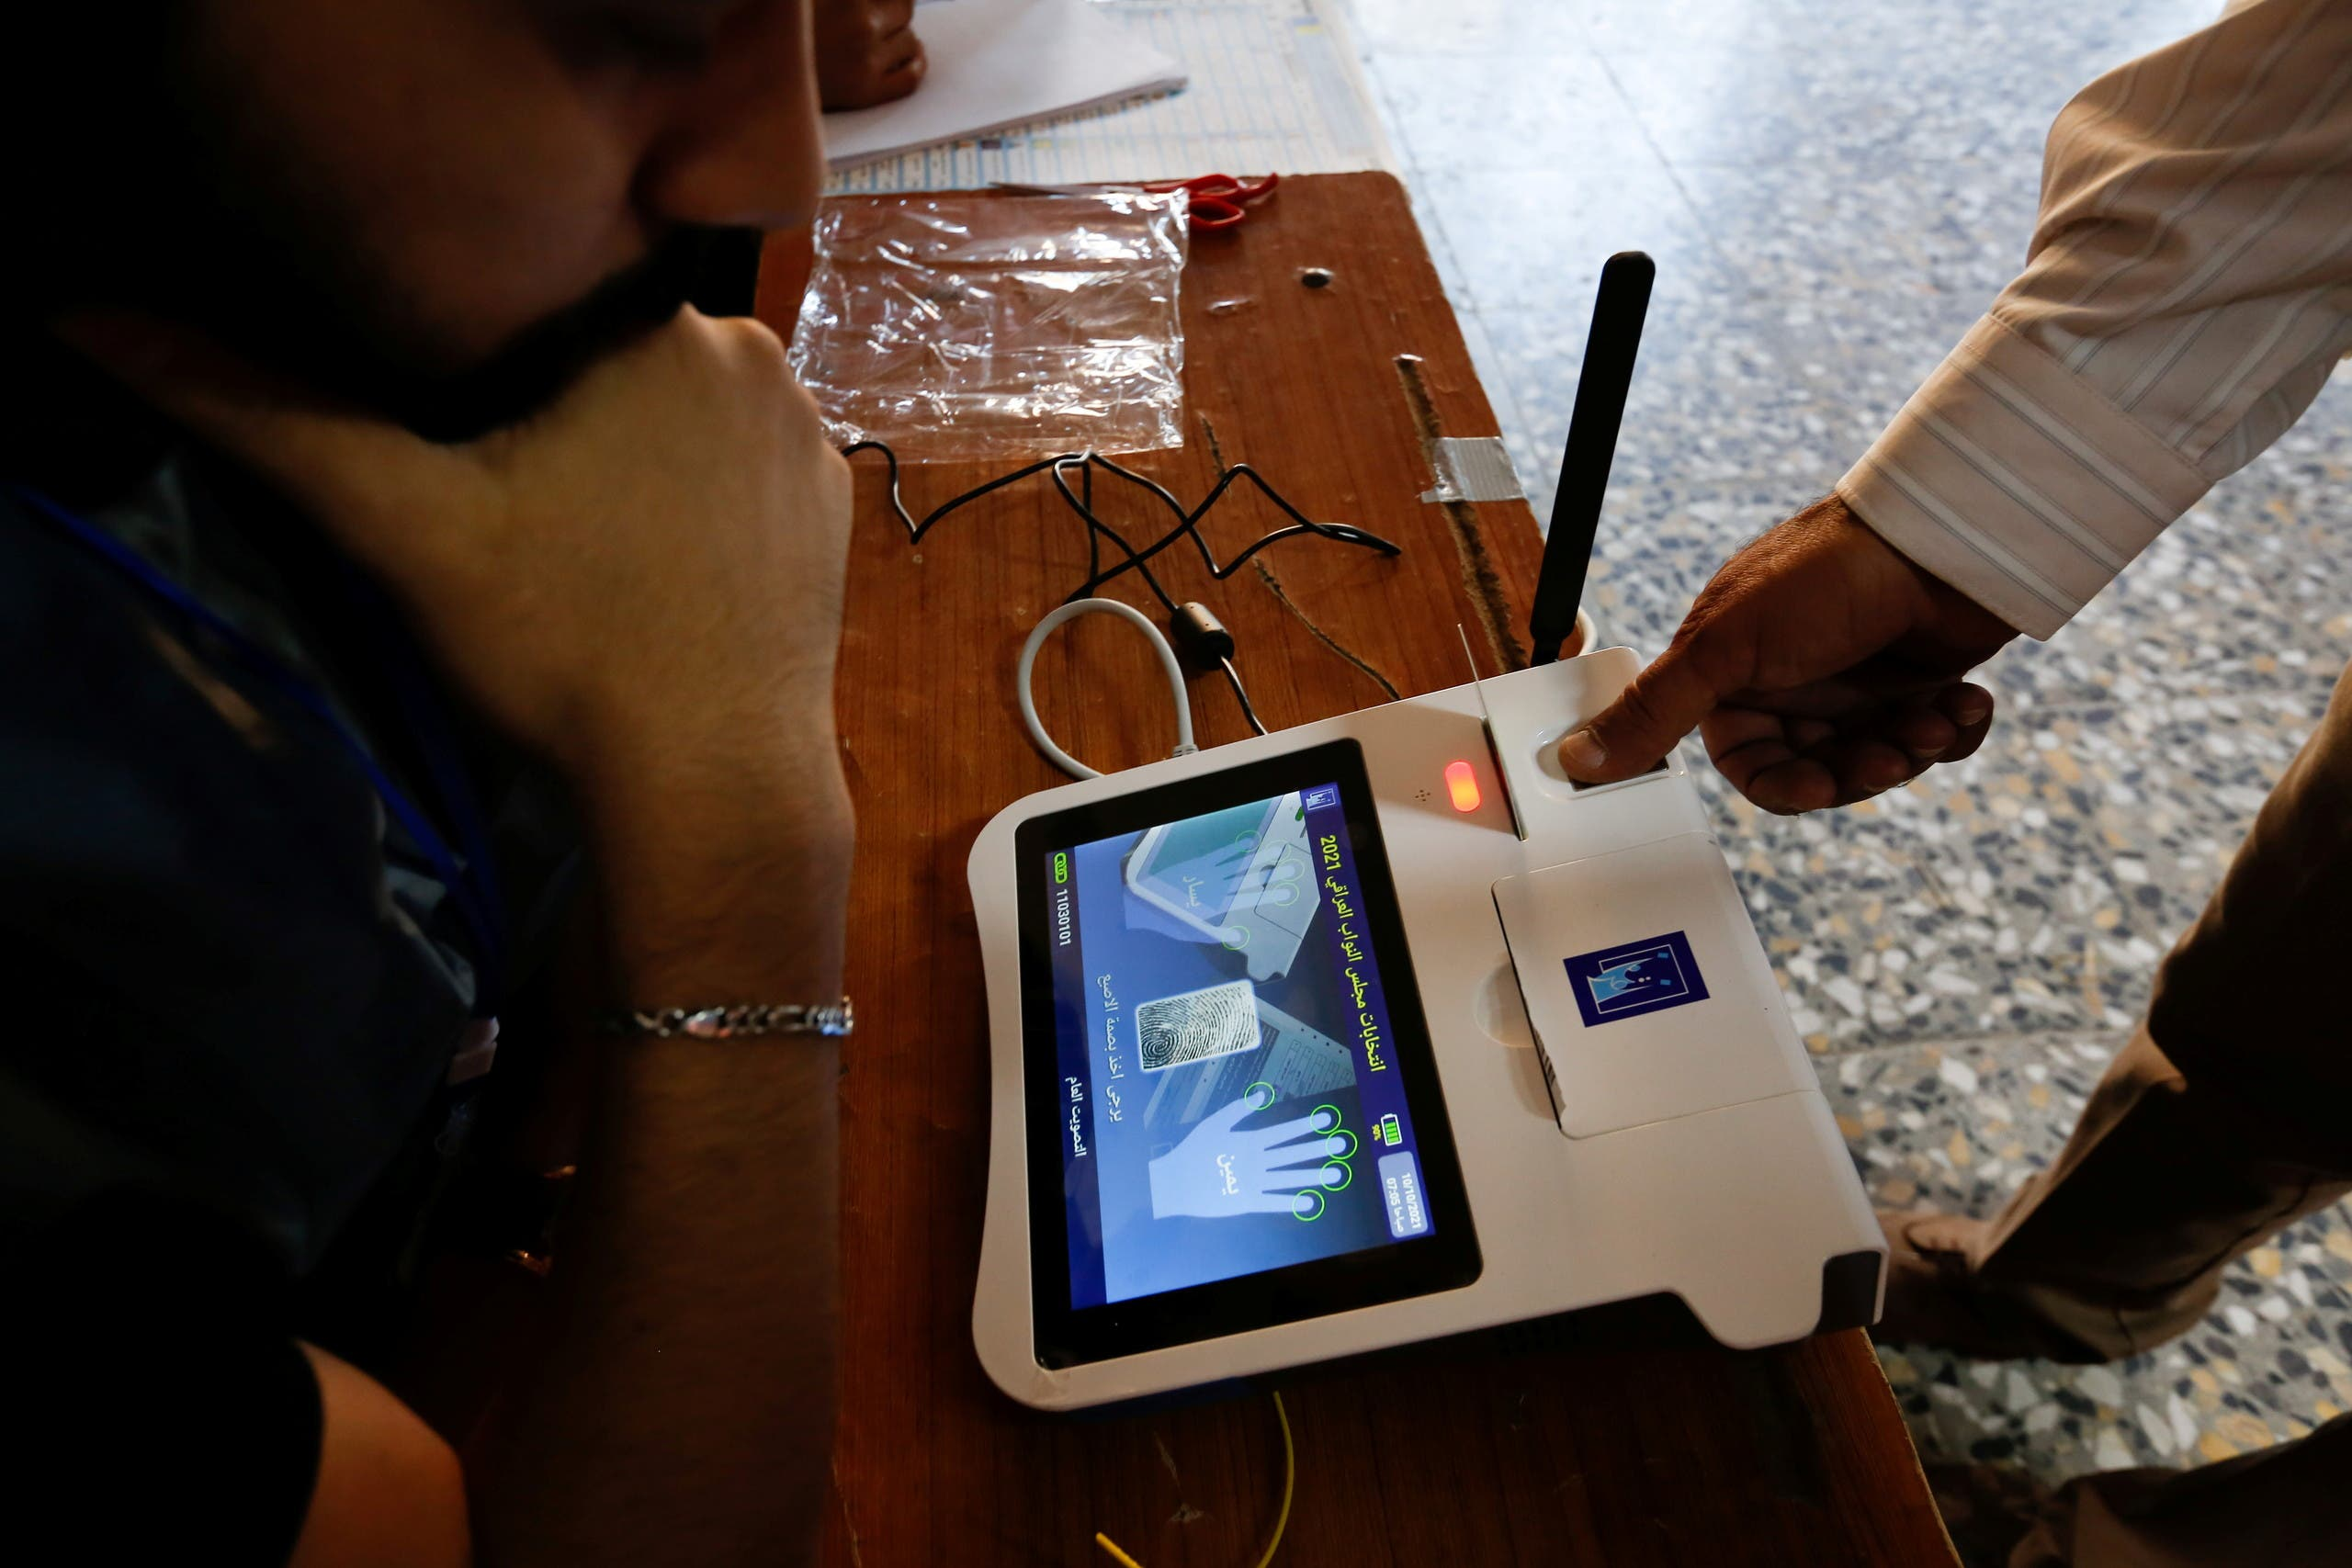 The finger of an Iraqi election official opens a device to start the legislative elections in Iraq, in Sadr City, Baghdad, October 10, 2021. (Reuters)